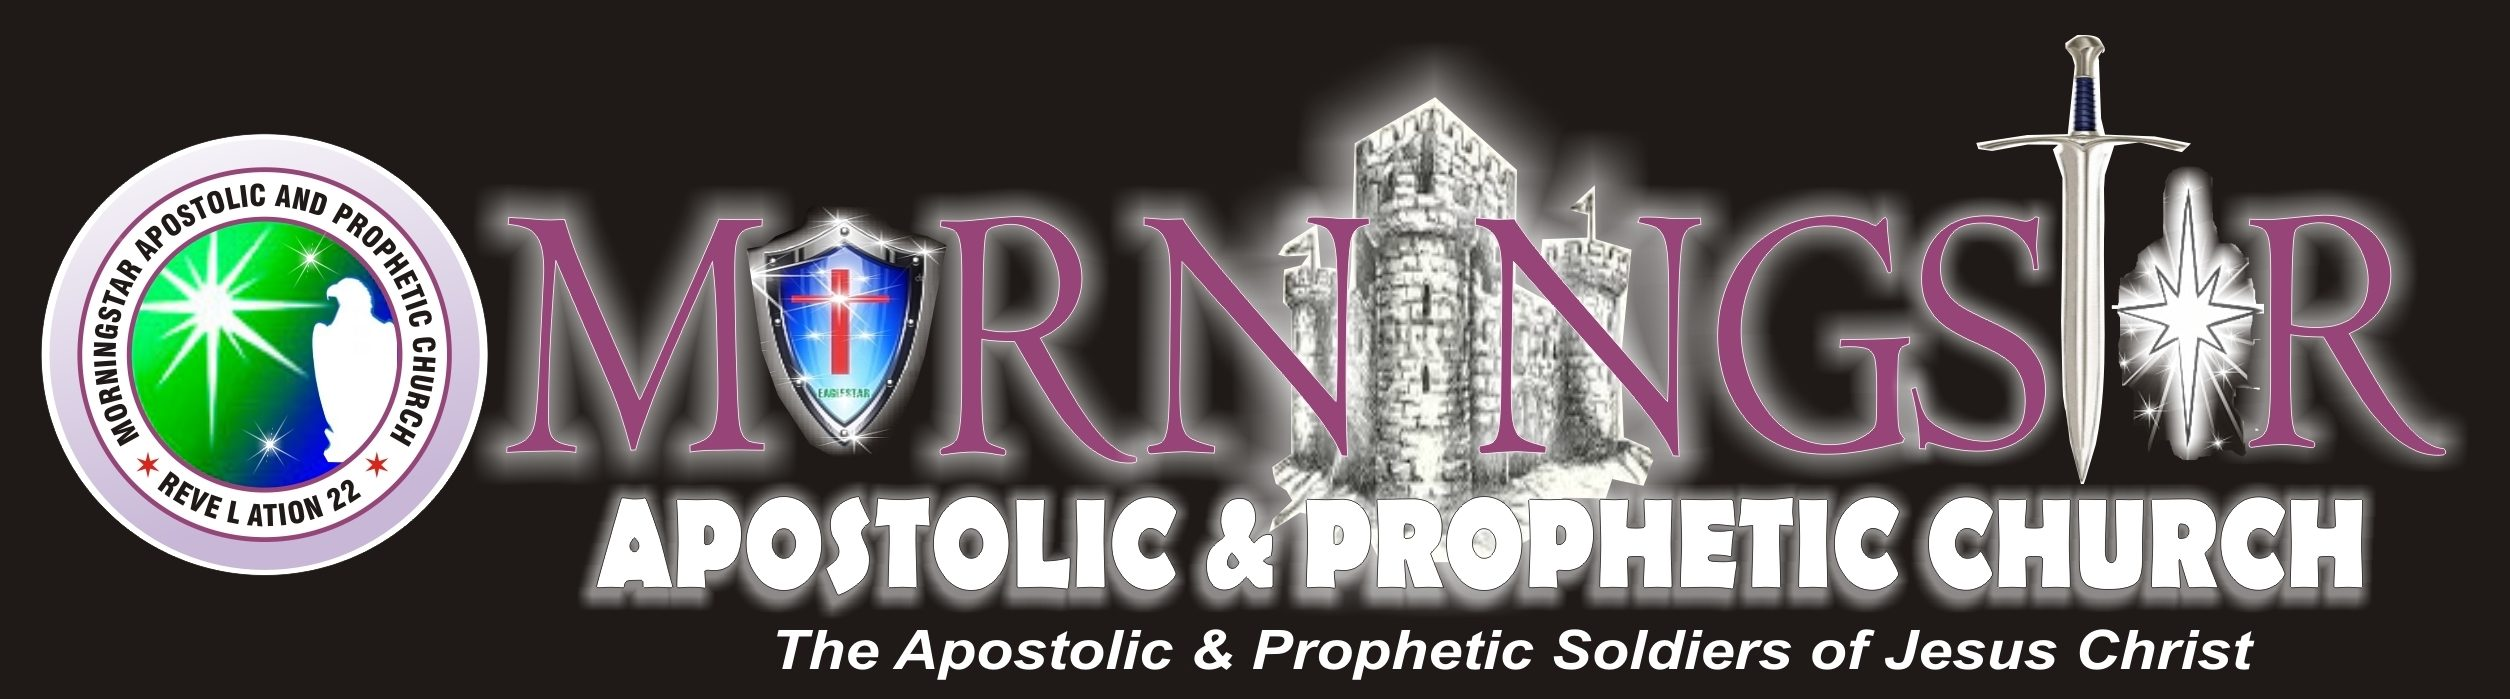 MorningStar Apostolic And Prophetic Church and EagleStar Ministries